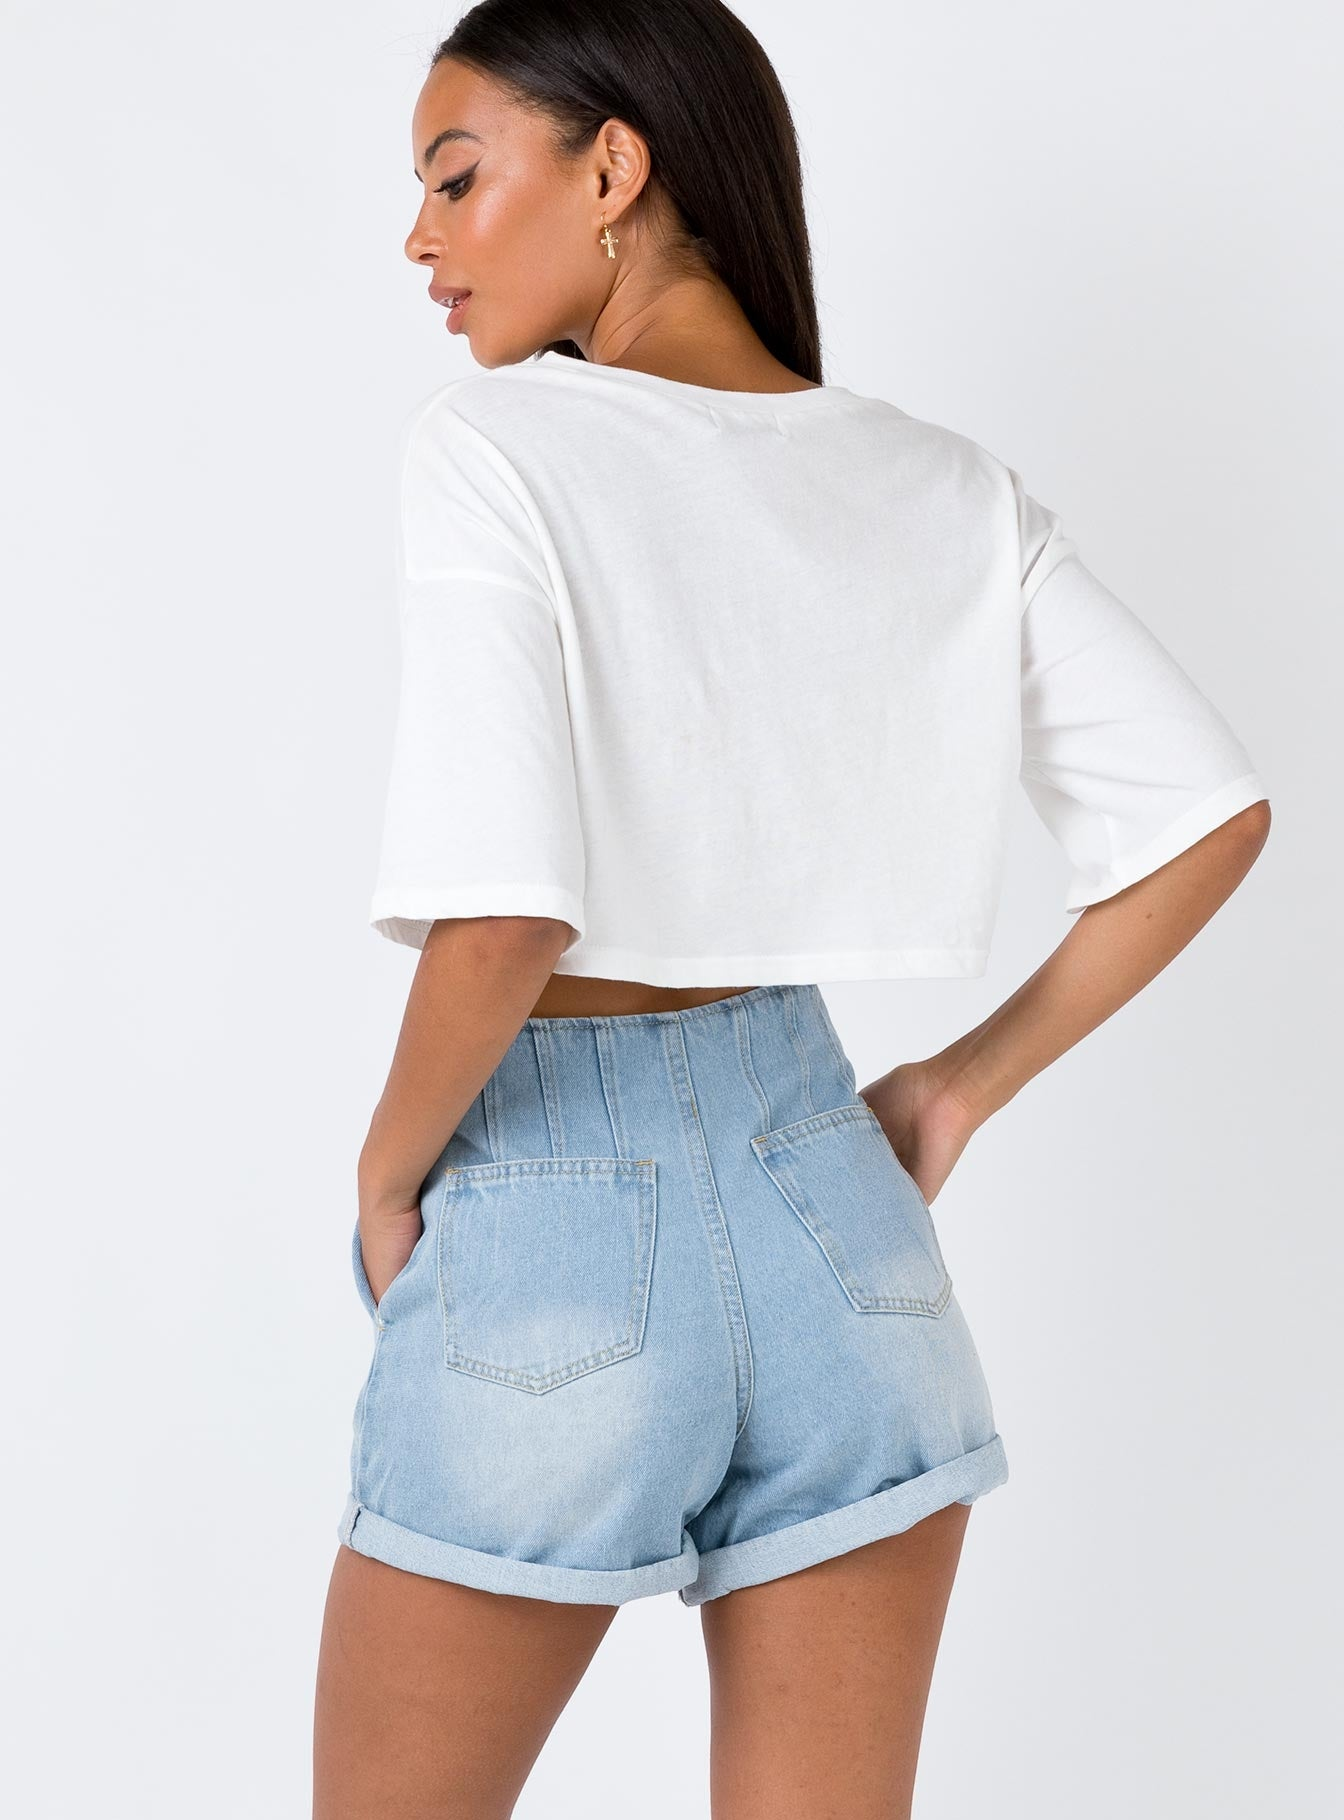 The Cradle Shorts Denim